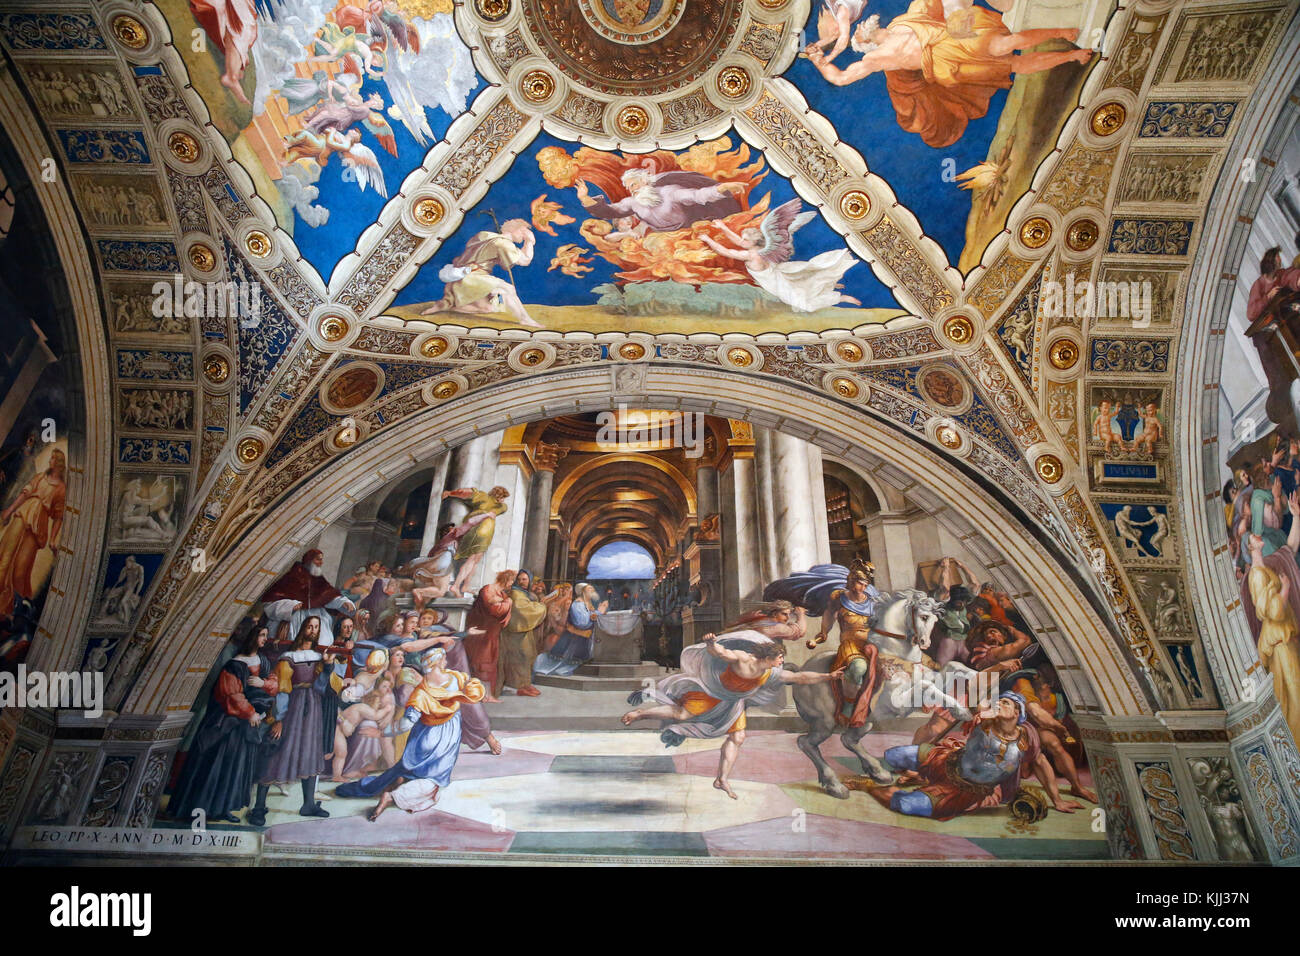 Vatican museums, Rome. Raphael's rooms. The expulsion of Heliodorus from the Temple, 1511-12. Italy. - Stock Image